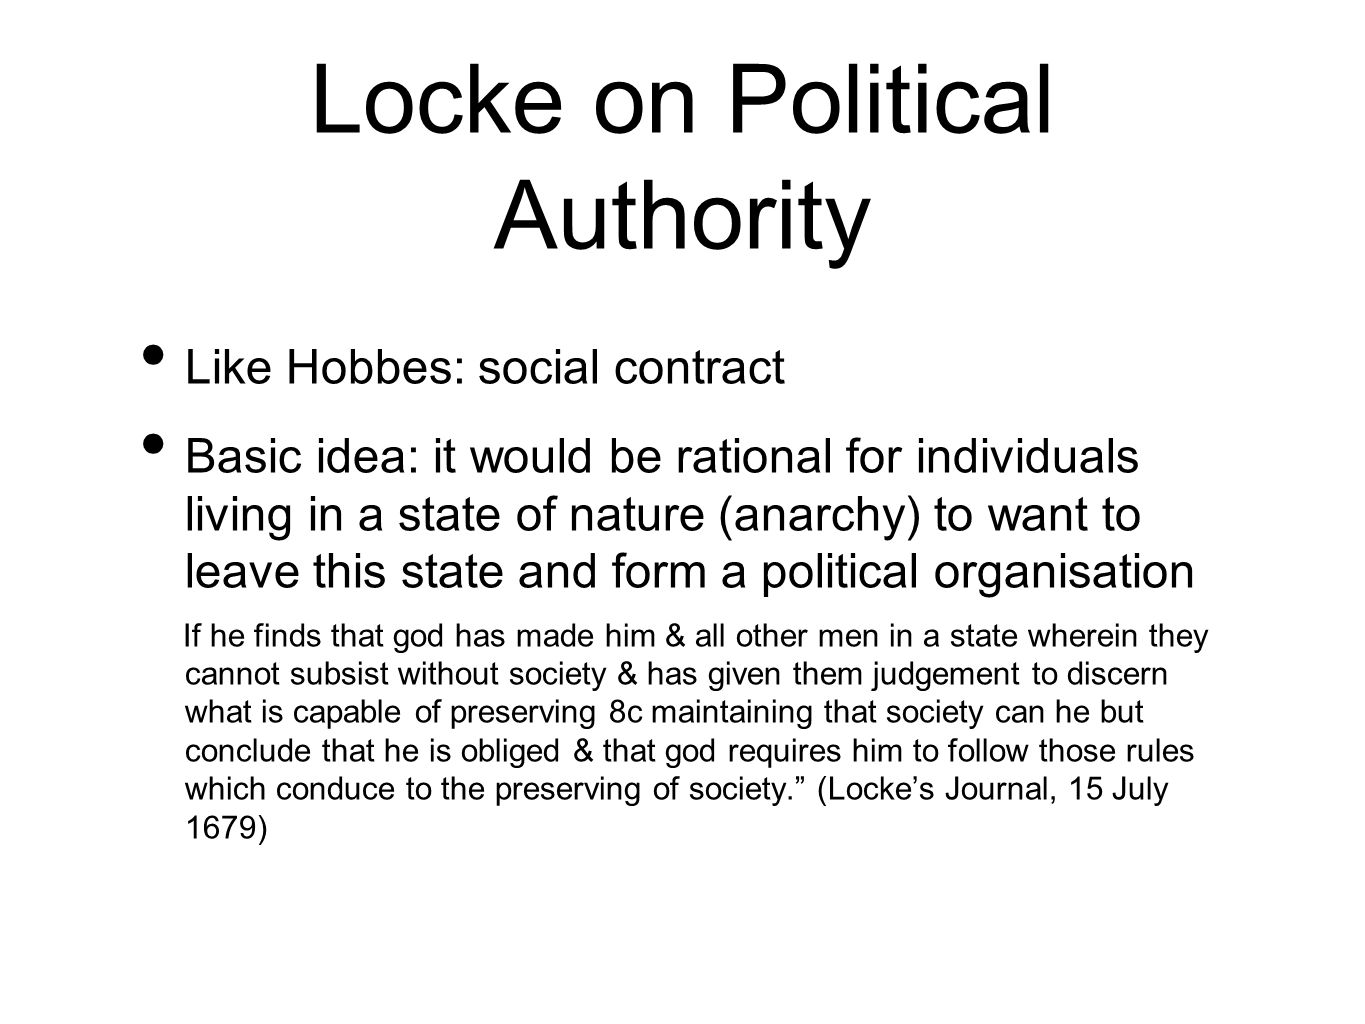 Locke on Political Authority Like Hobbes: social contract Basic idea: it would be rational for individuals living in a state of nature (anarchy) to want to leave this state and form a political organisation If he finds that god has made him & all other men in a state wherein they cannot subsist without society & has given them judgement to discern what is capable of preserving 8c maintaining that society can he but conclude that he is obliged & that god requires him to follow those rules which conduce to the preserving of society.